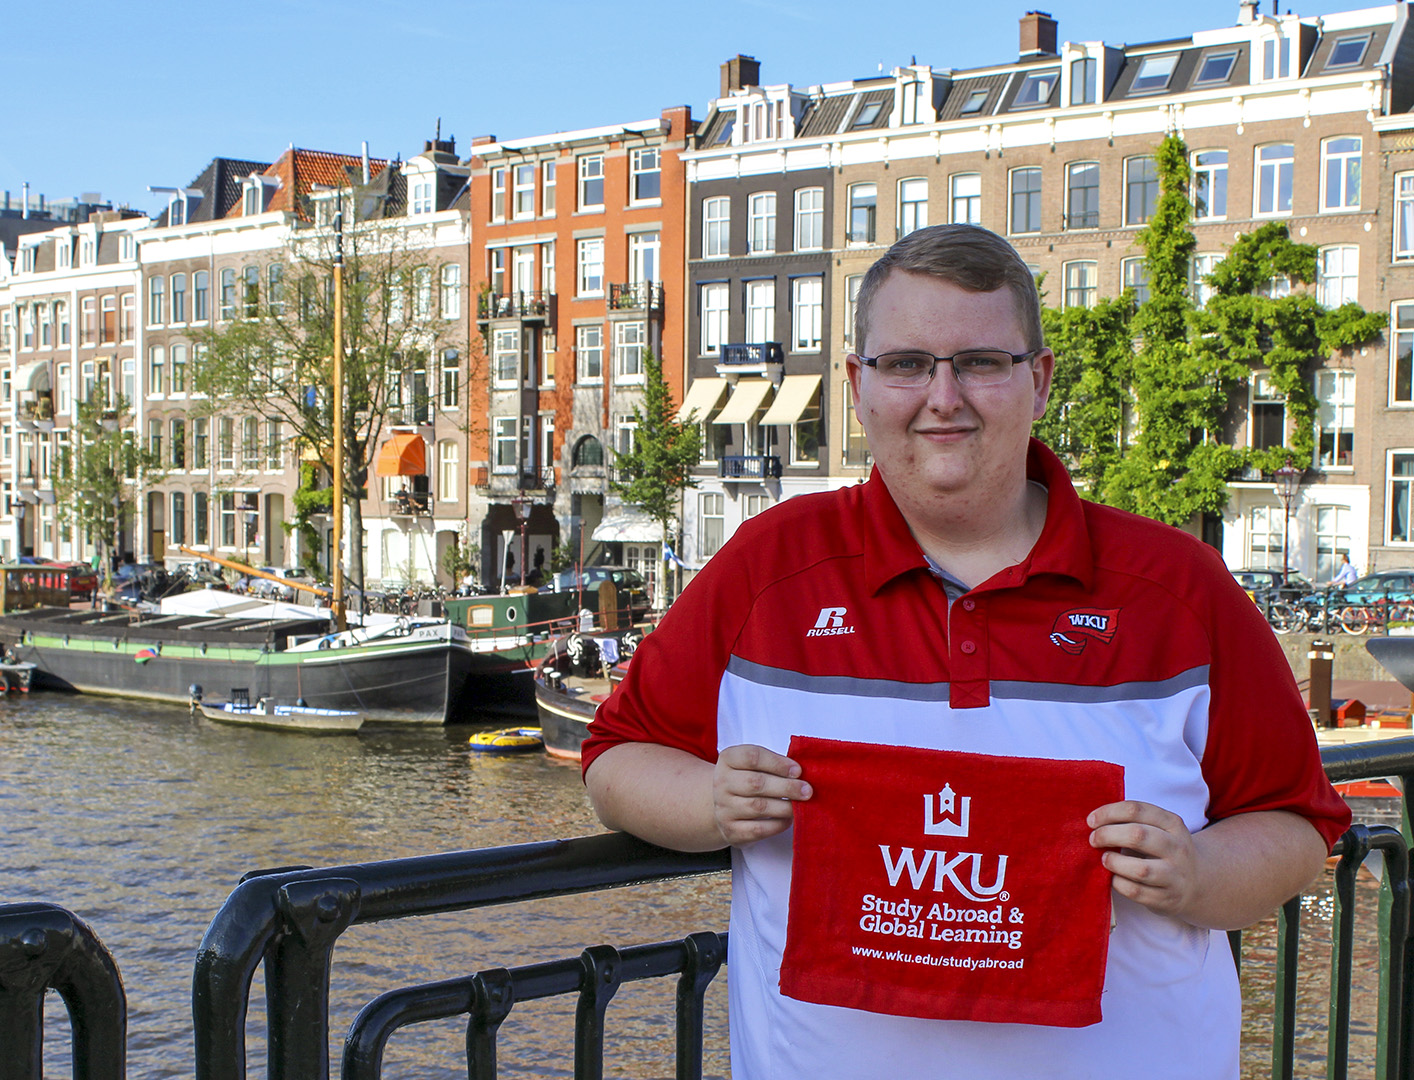 Tompkinsville senior Evan Brown studied abroad in Amsterdam this summer. Photo submitted by Evan Brown